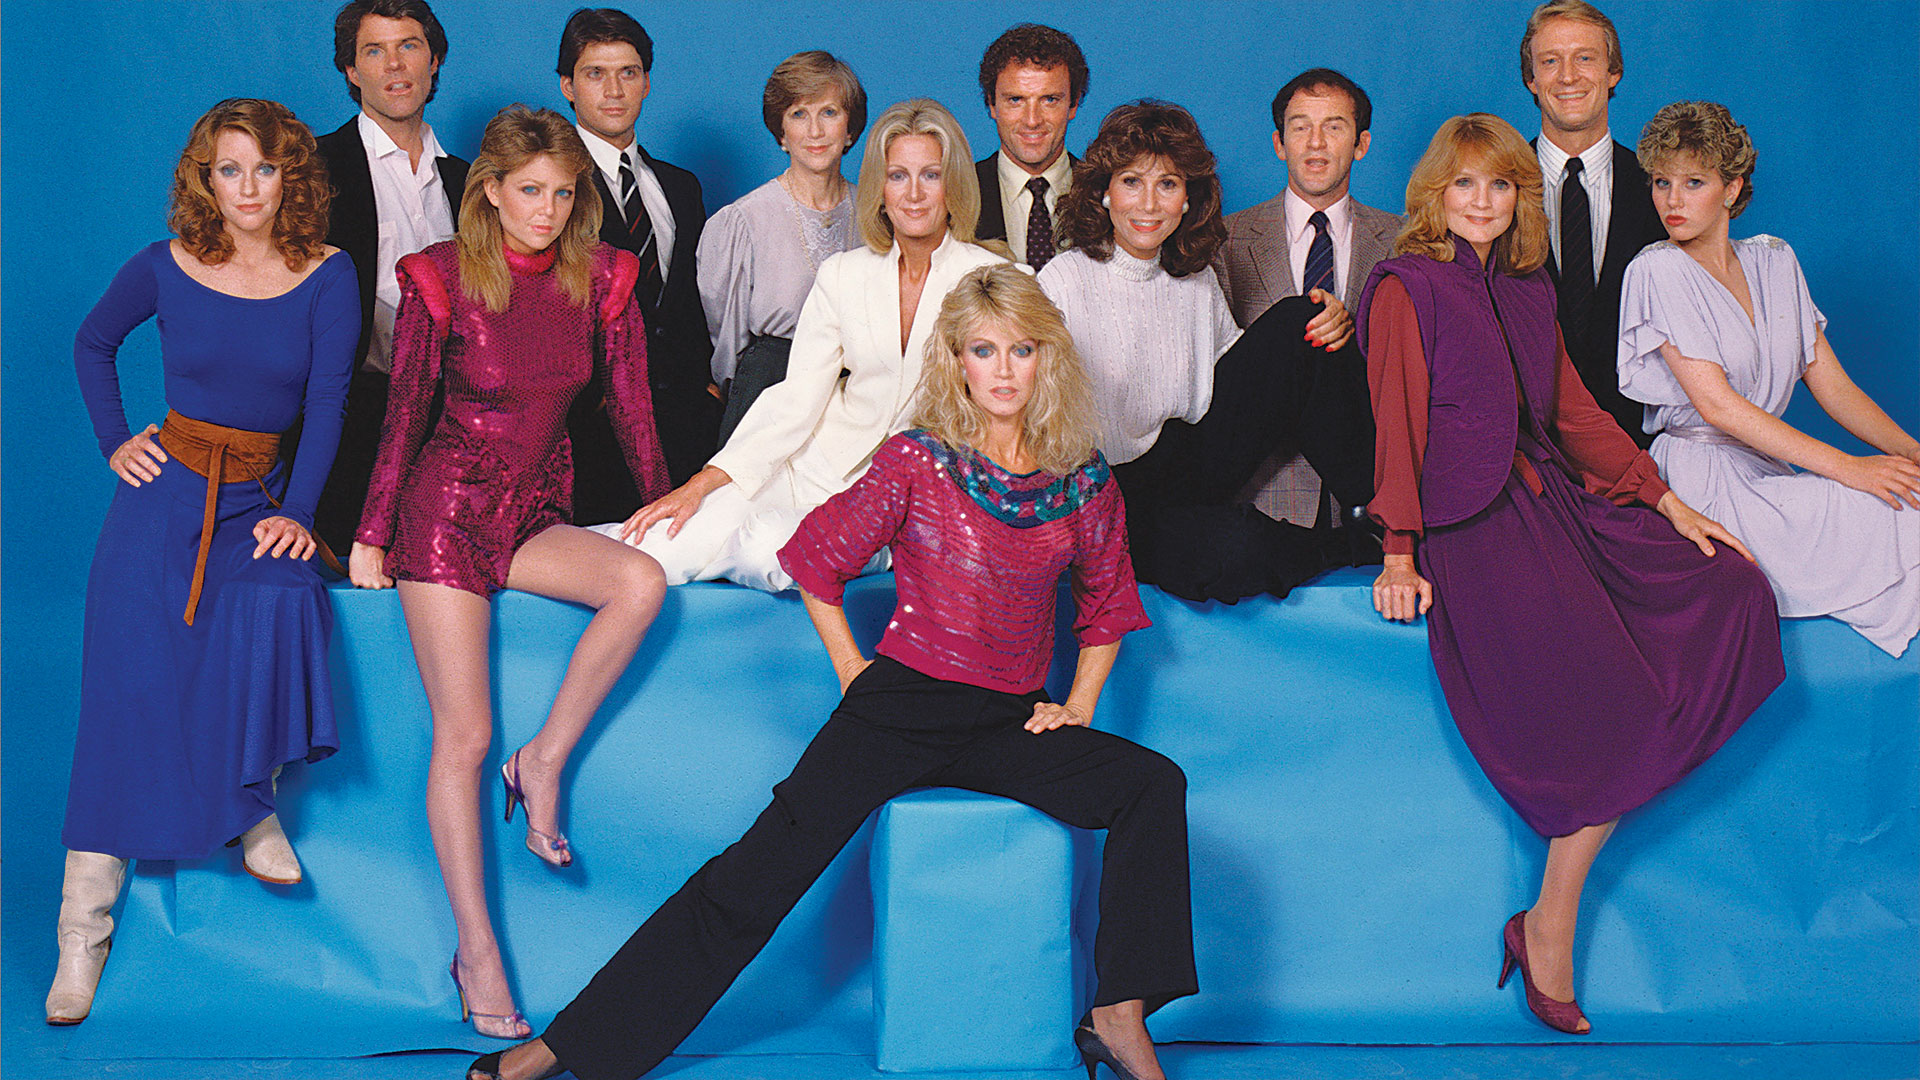 We're still tied up in knots over the Dallas spinoff that spanned three decades.